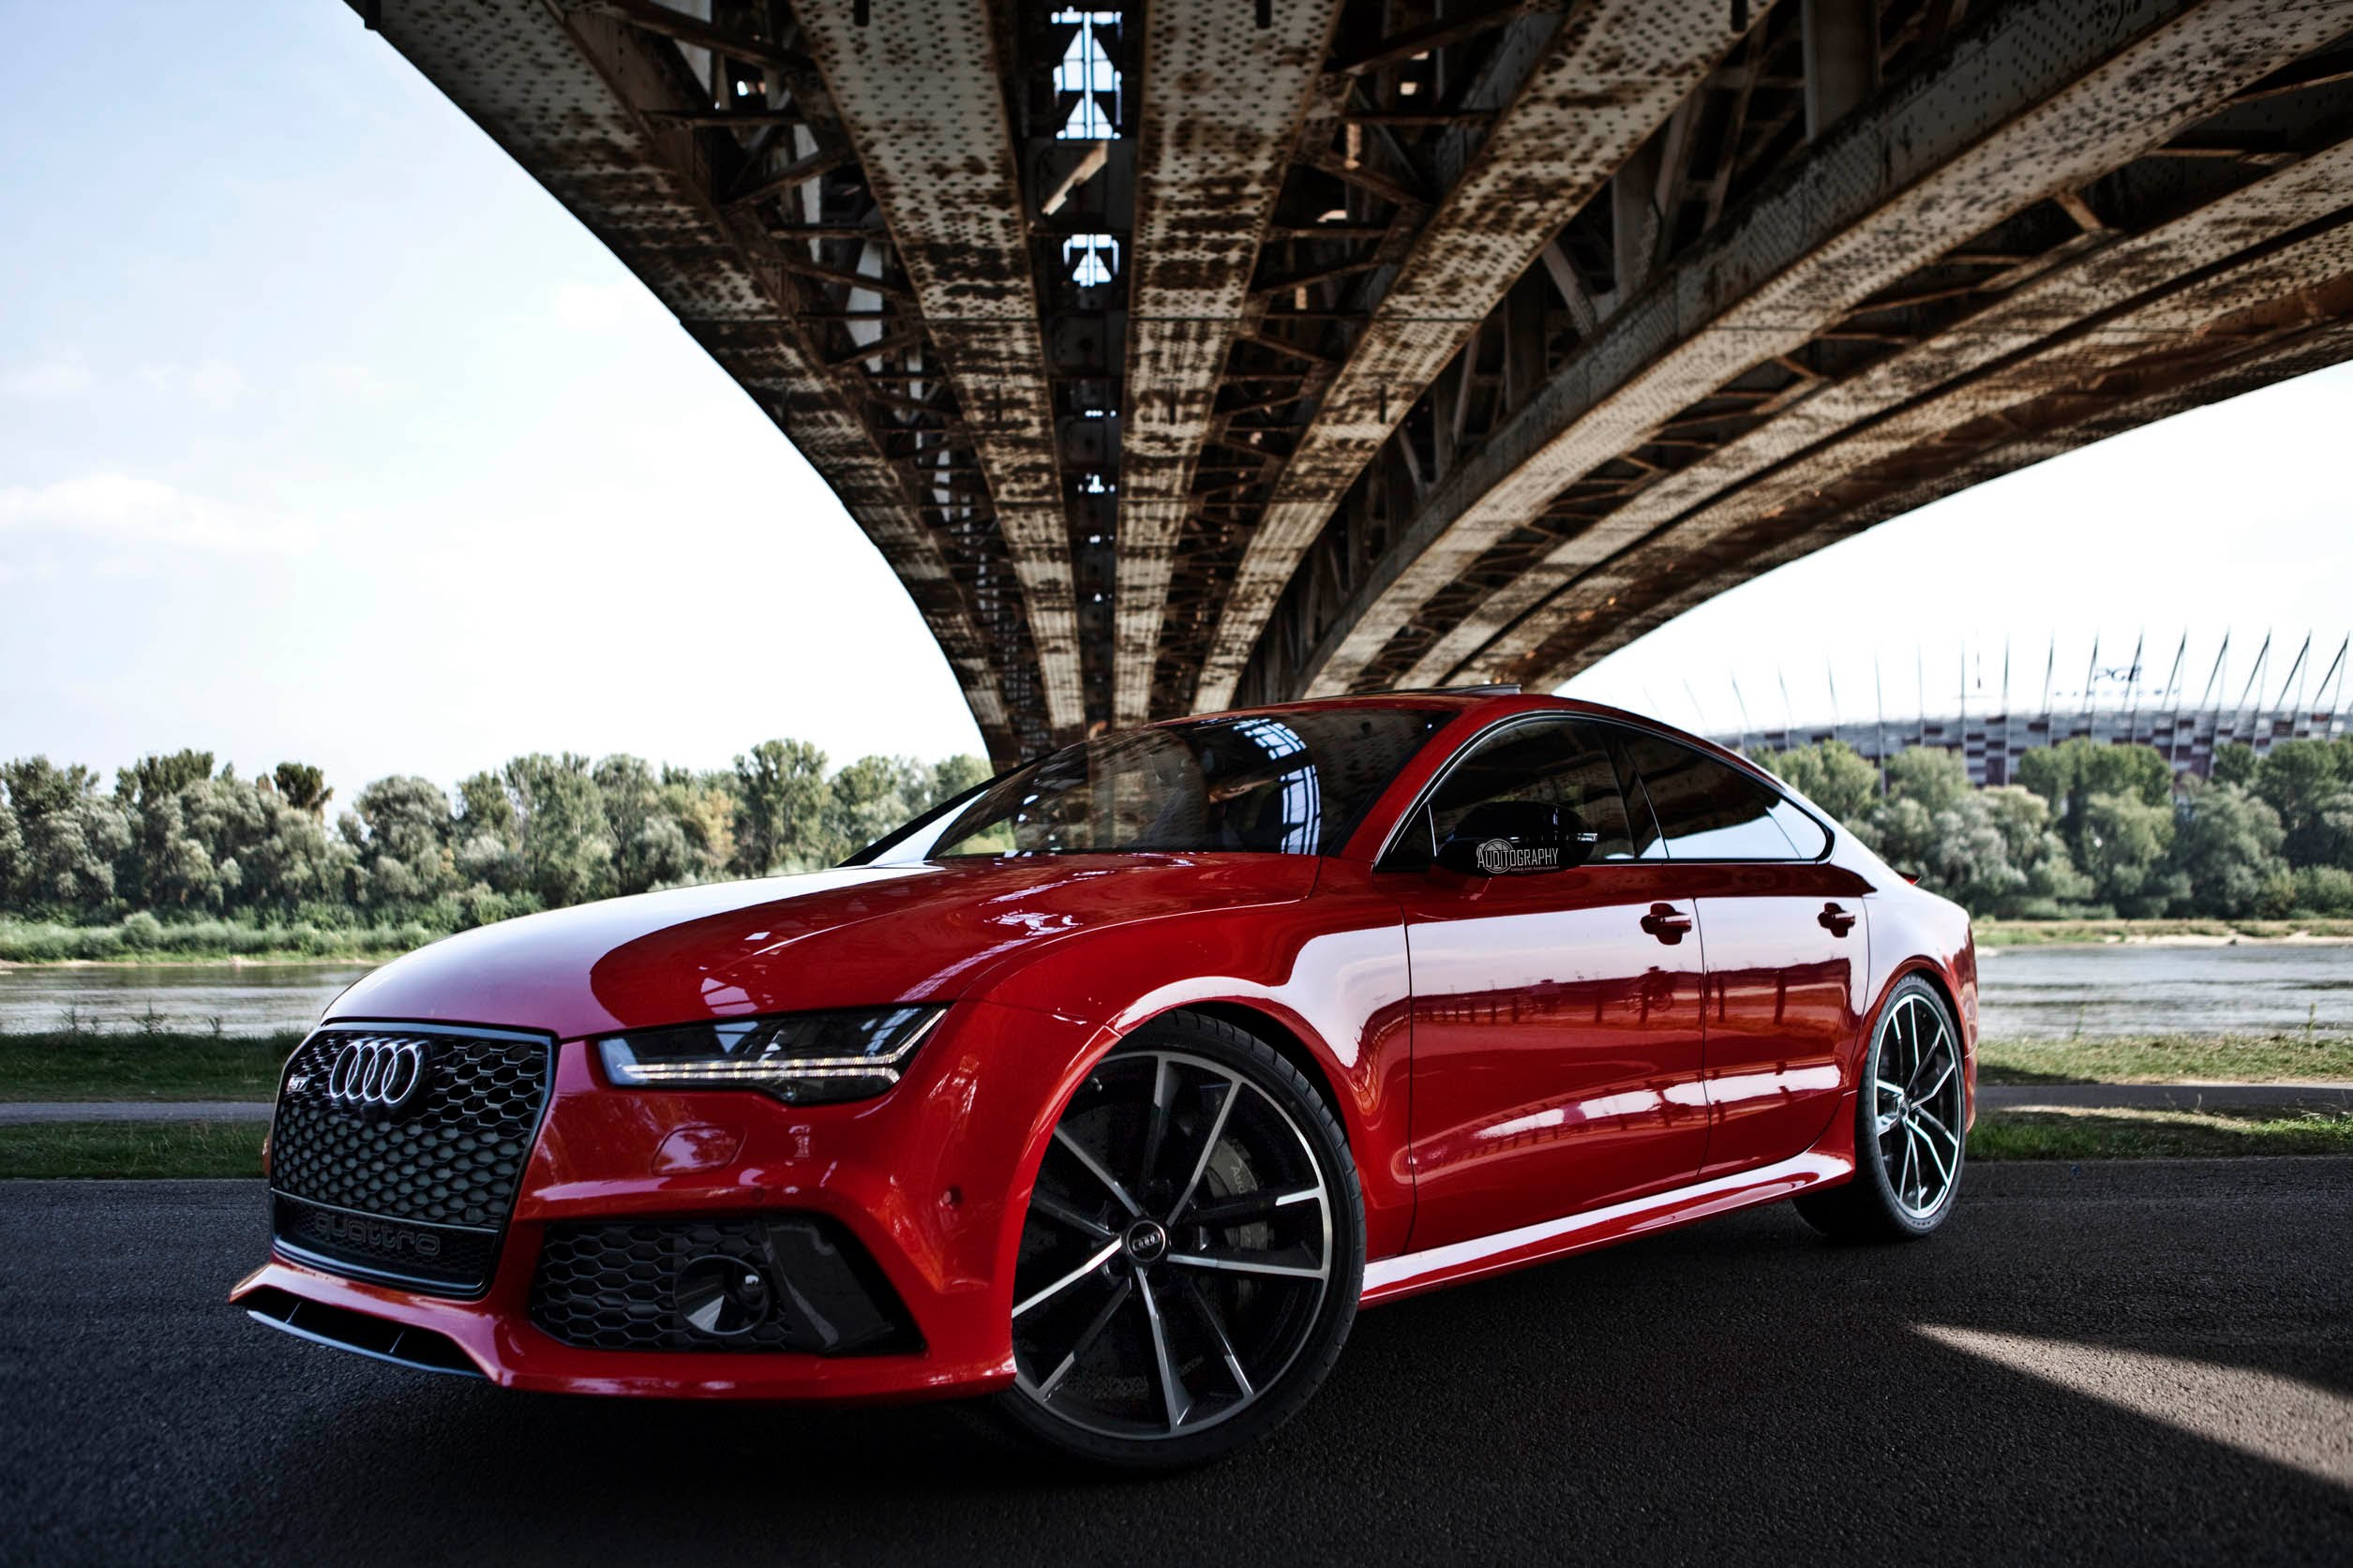 Audi Rs7 Wallpapers Vehicles Hq Audi Rs7 Pictures 4k Wallpapers 2019